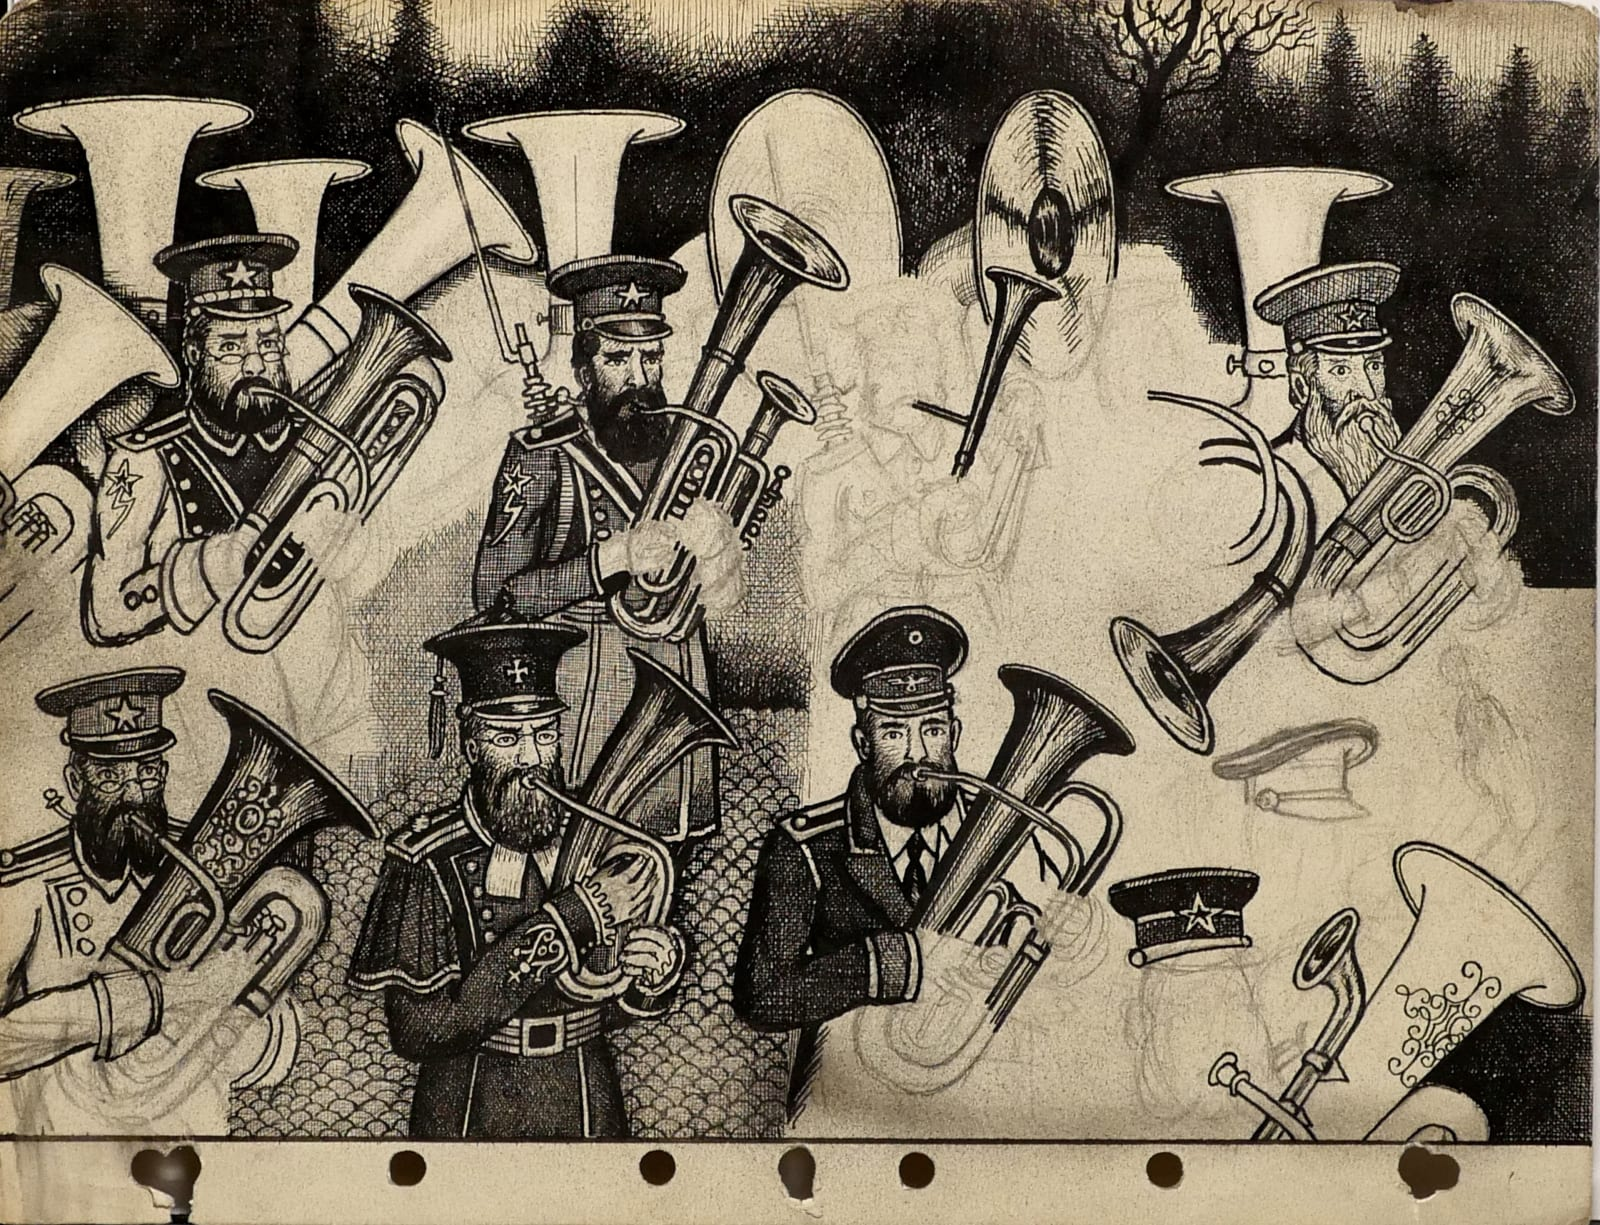 At Ostenwelt: Federal Socialists & Janissaries parading, 1958 Ink and pencil on sketch paper 8 1/2 x 11 in. (RK 136) $7,500